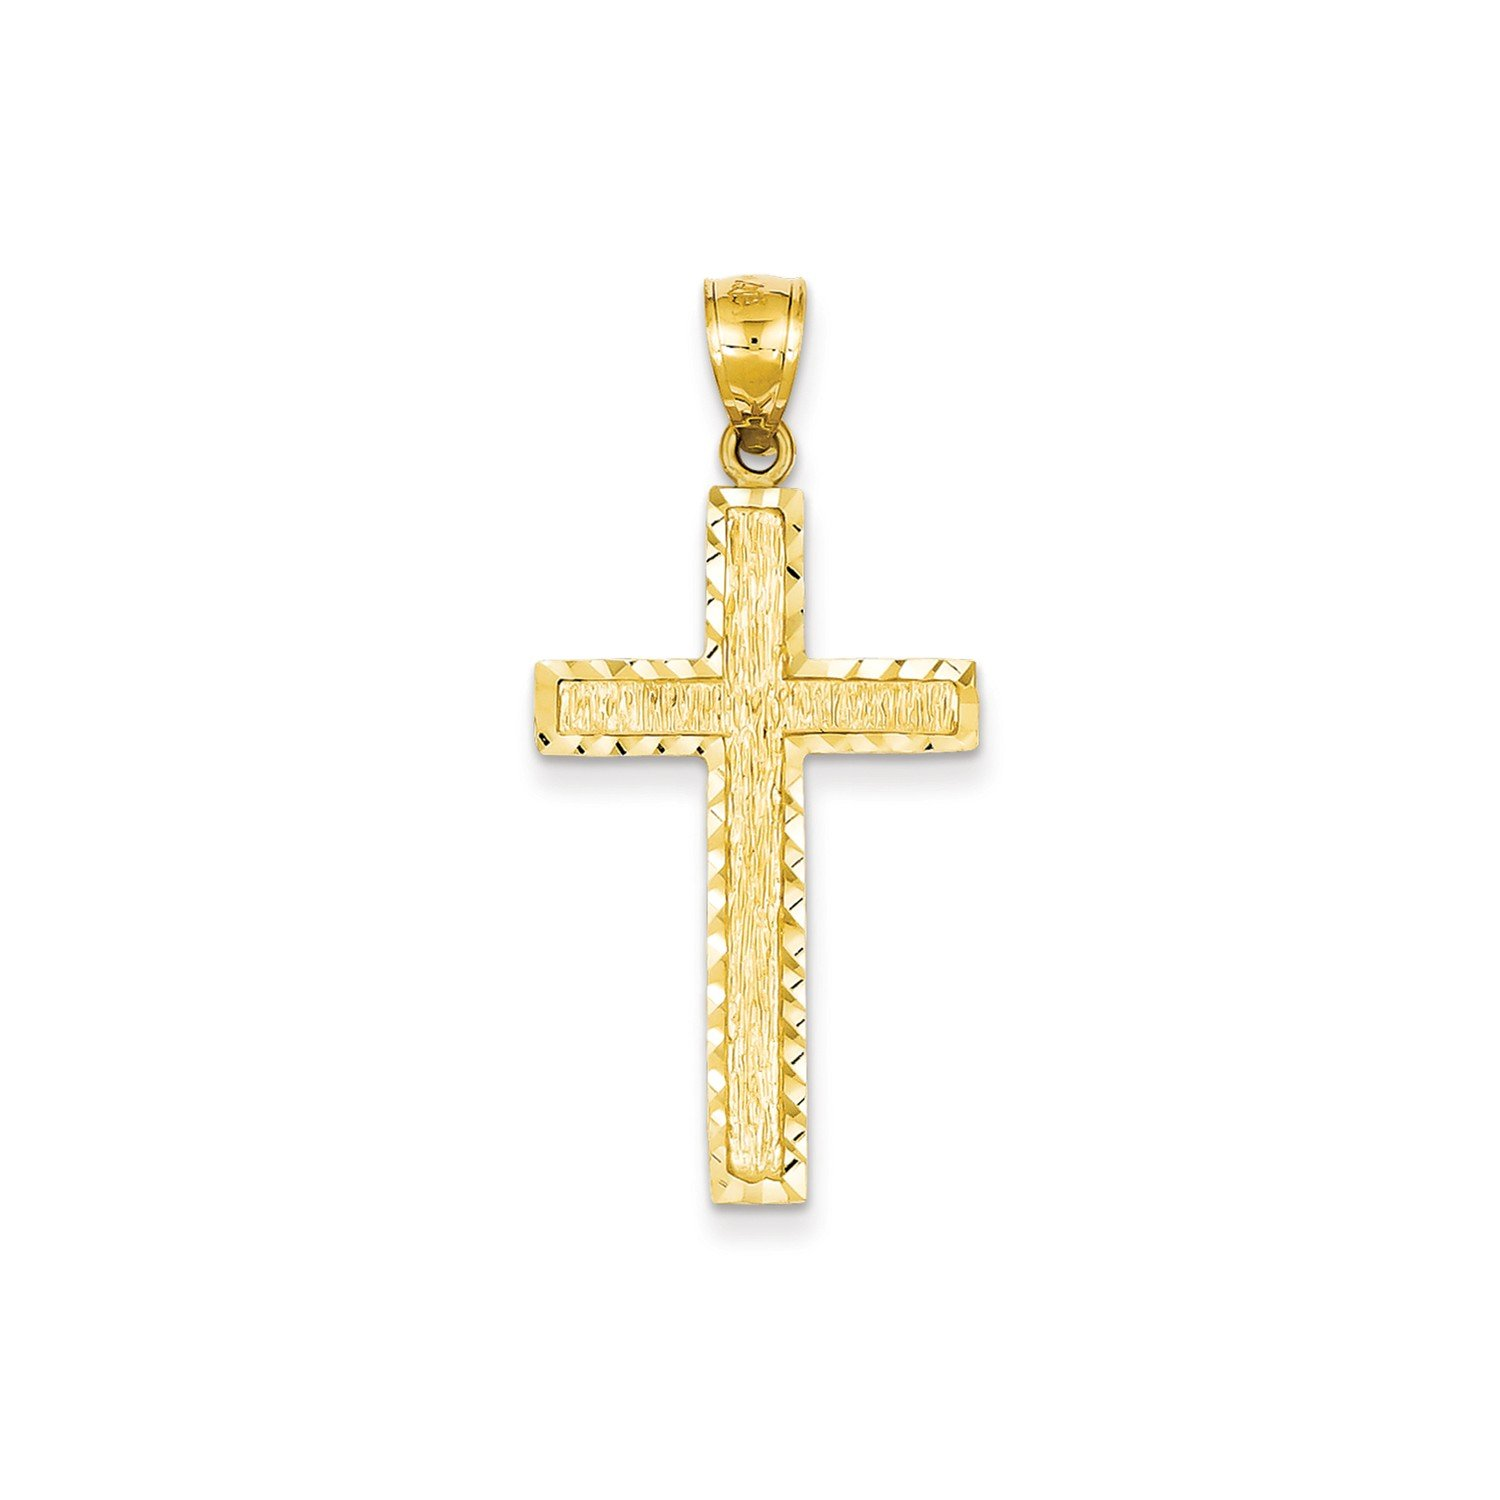 Roy Rose Jewelry 14K Yellow Gold Diamond-cut Cross Pendant 41mm length